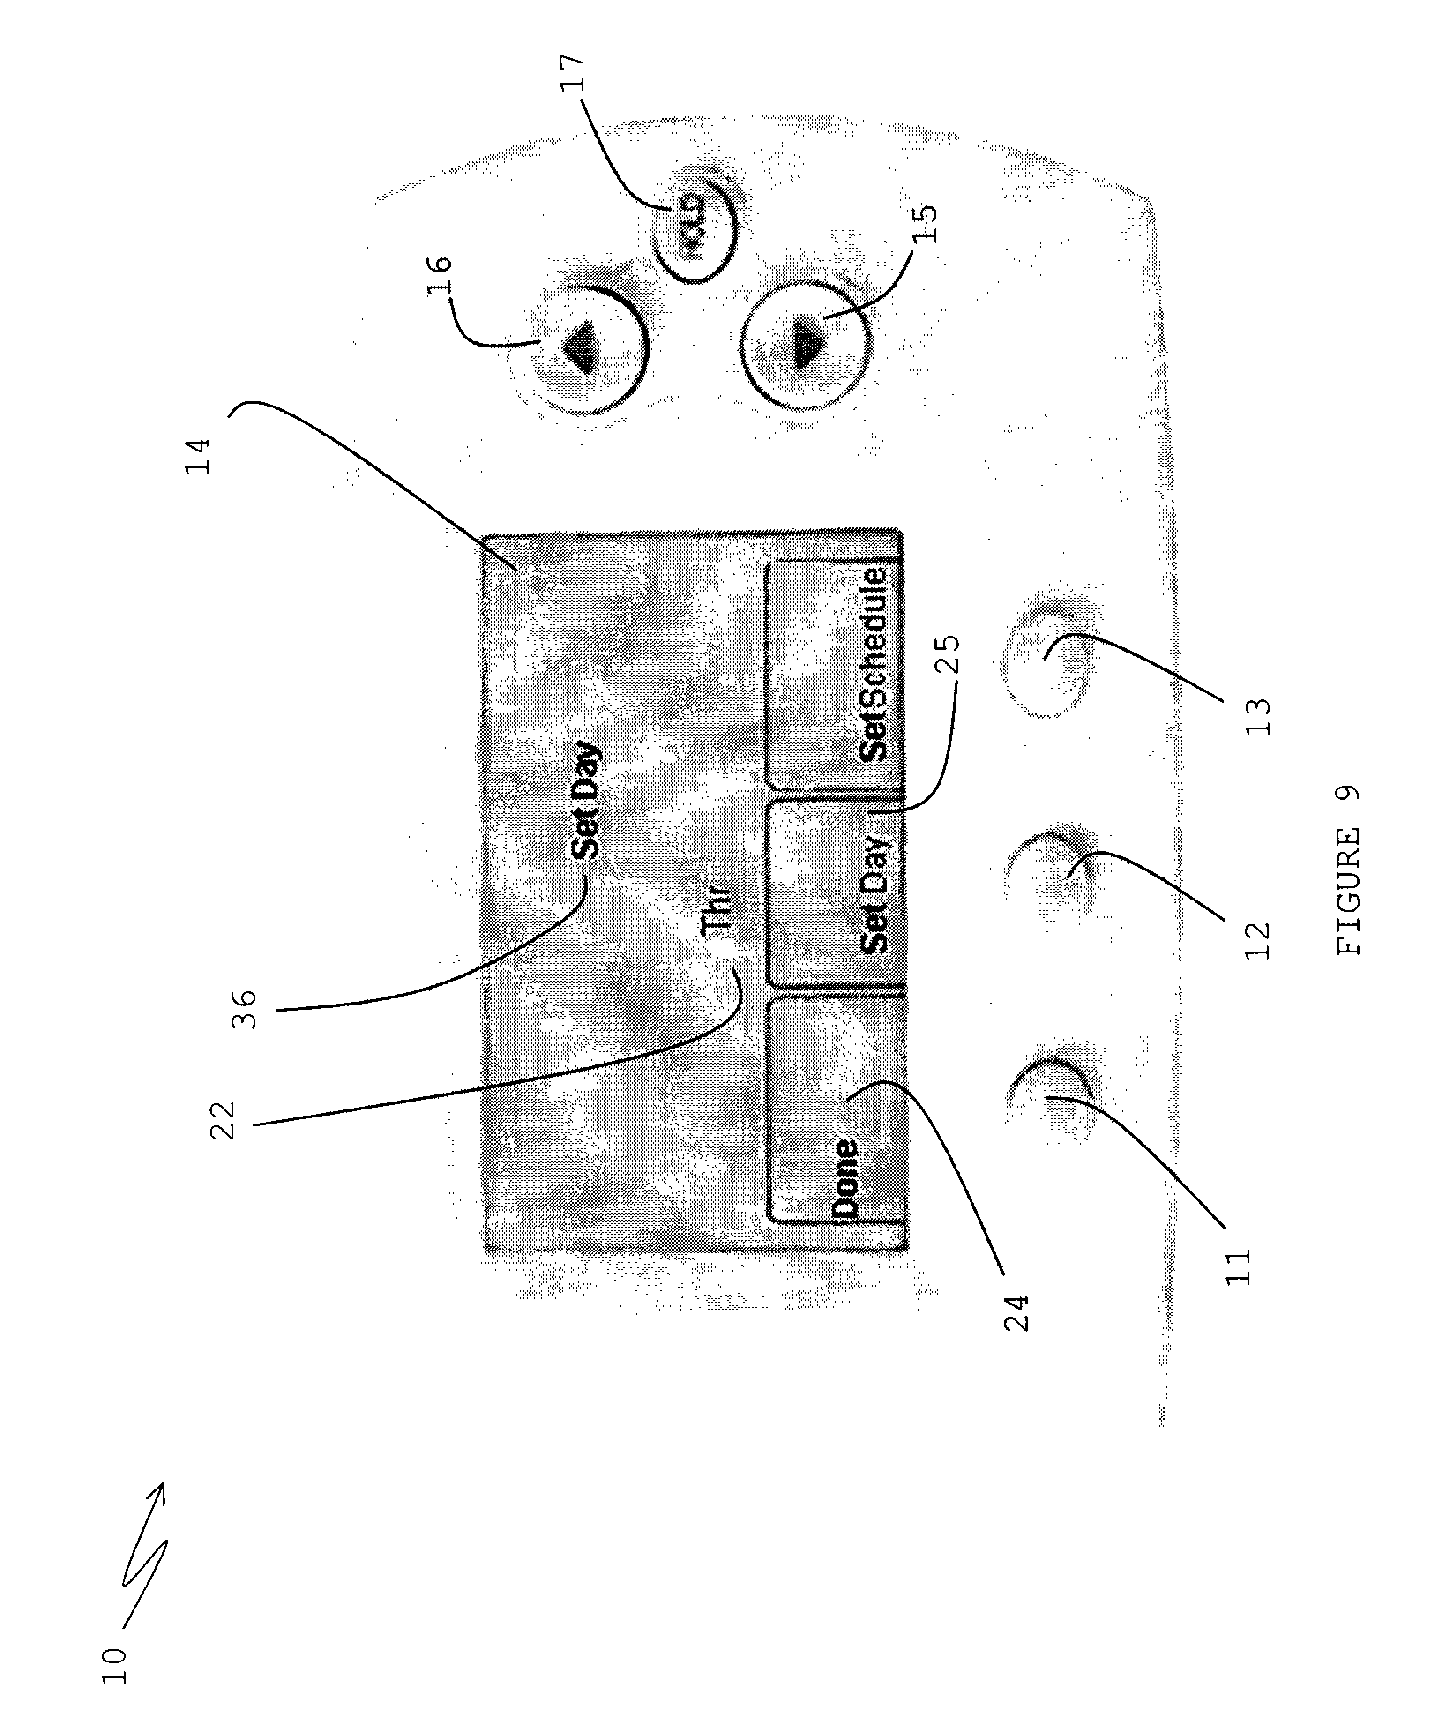 Patent Us7584897 Controller System User Interface Google Patents Amc Gremlin Wiring Diagram Drawing